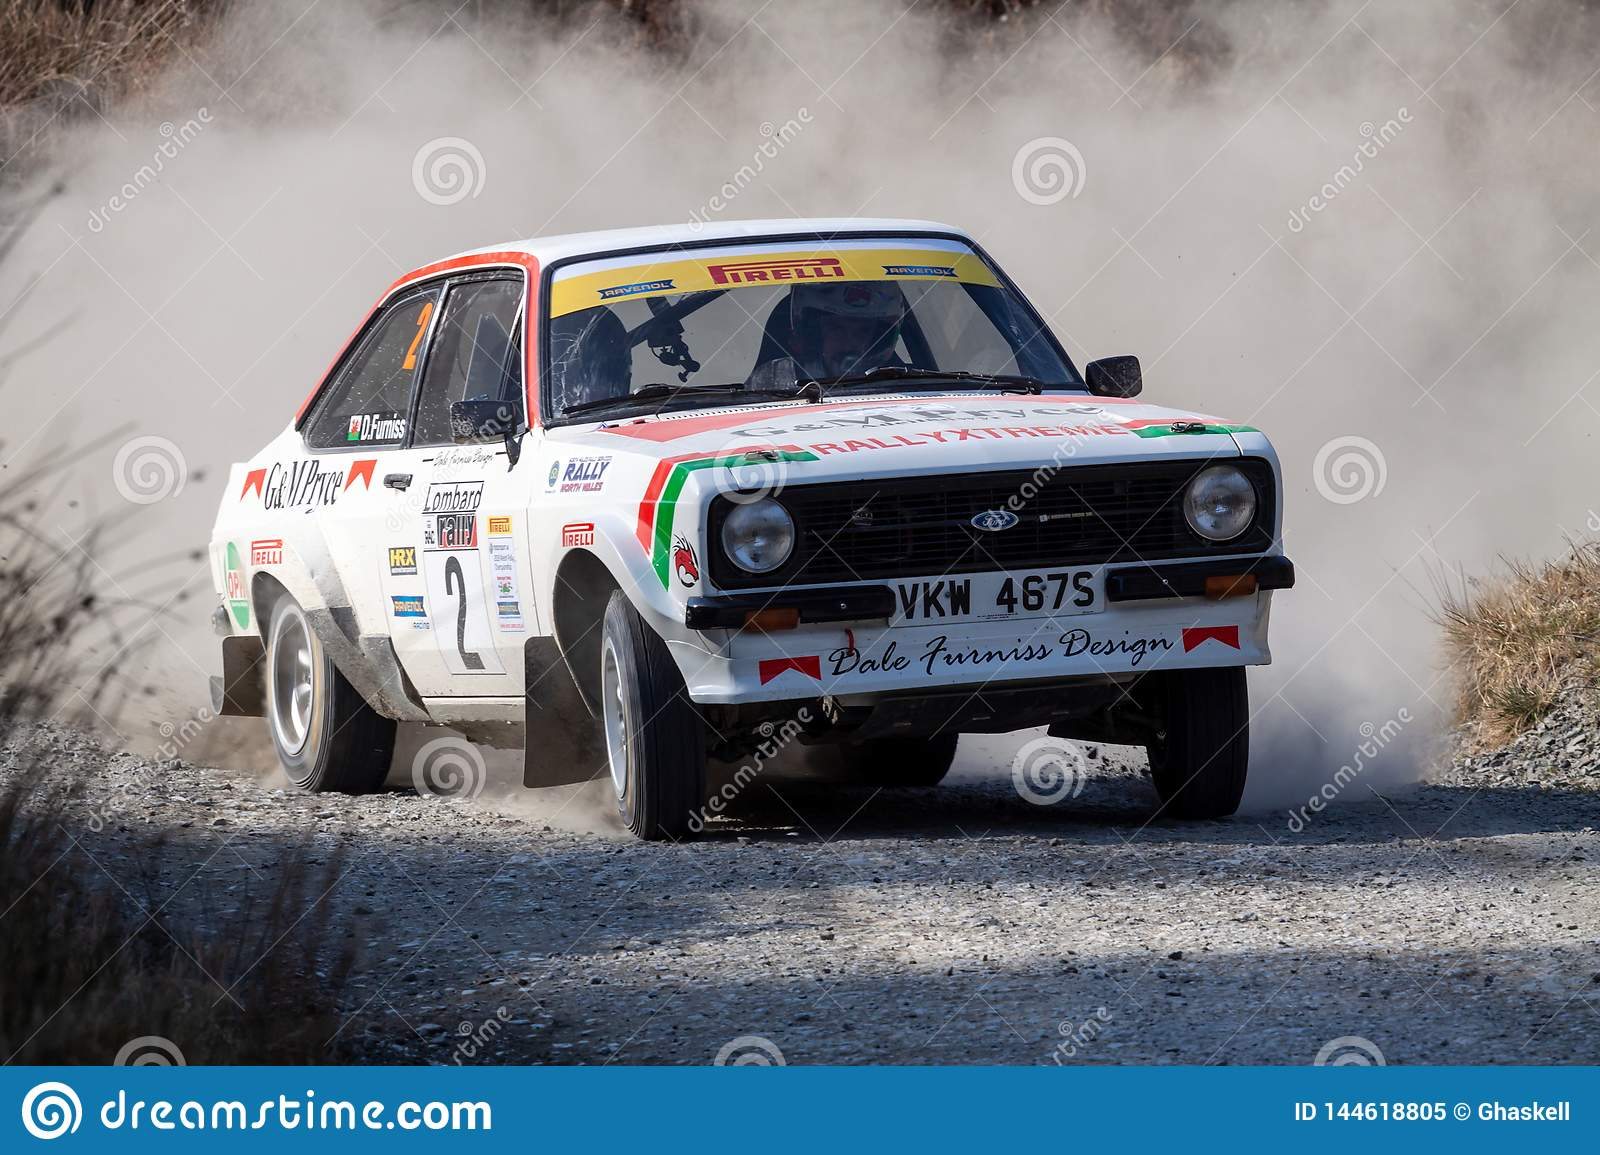 Ford Mkii Escort Rally Car